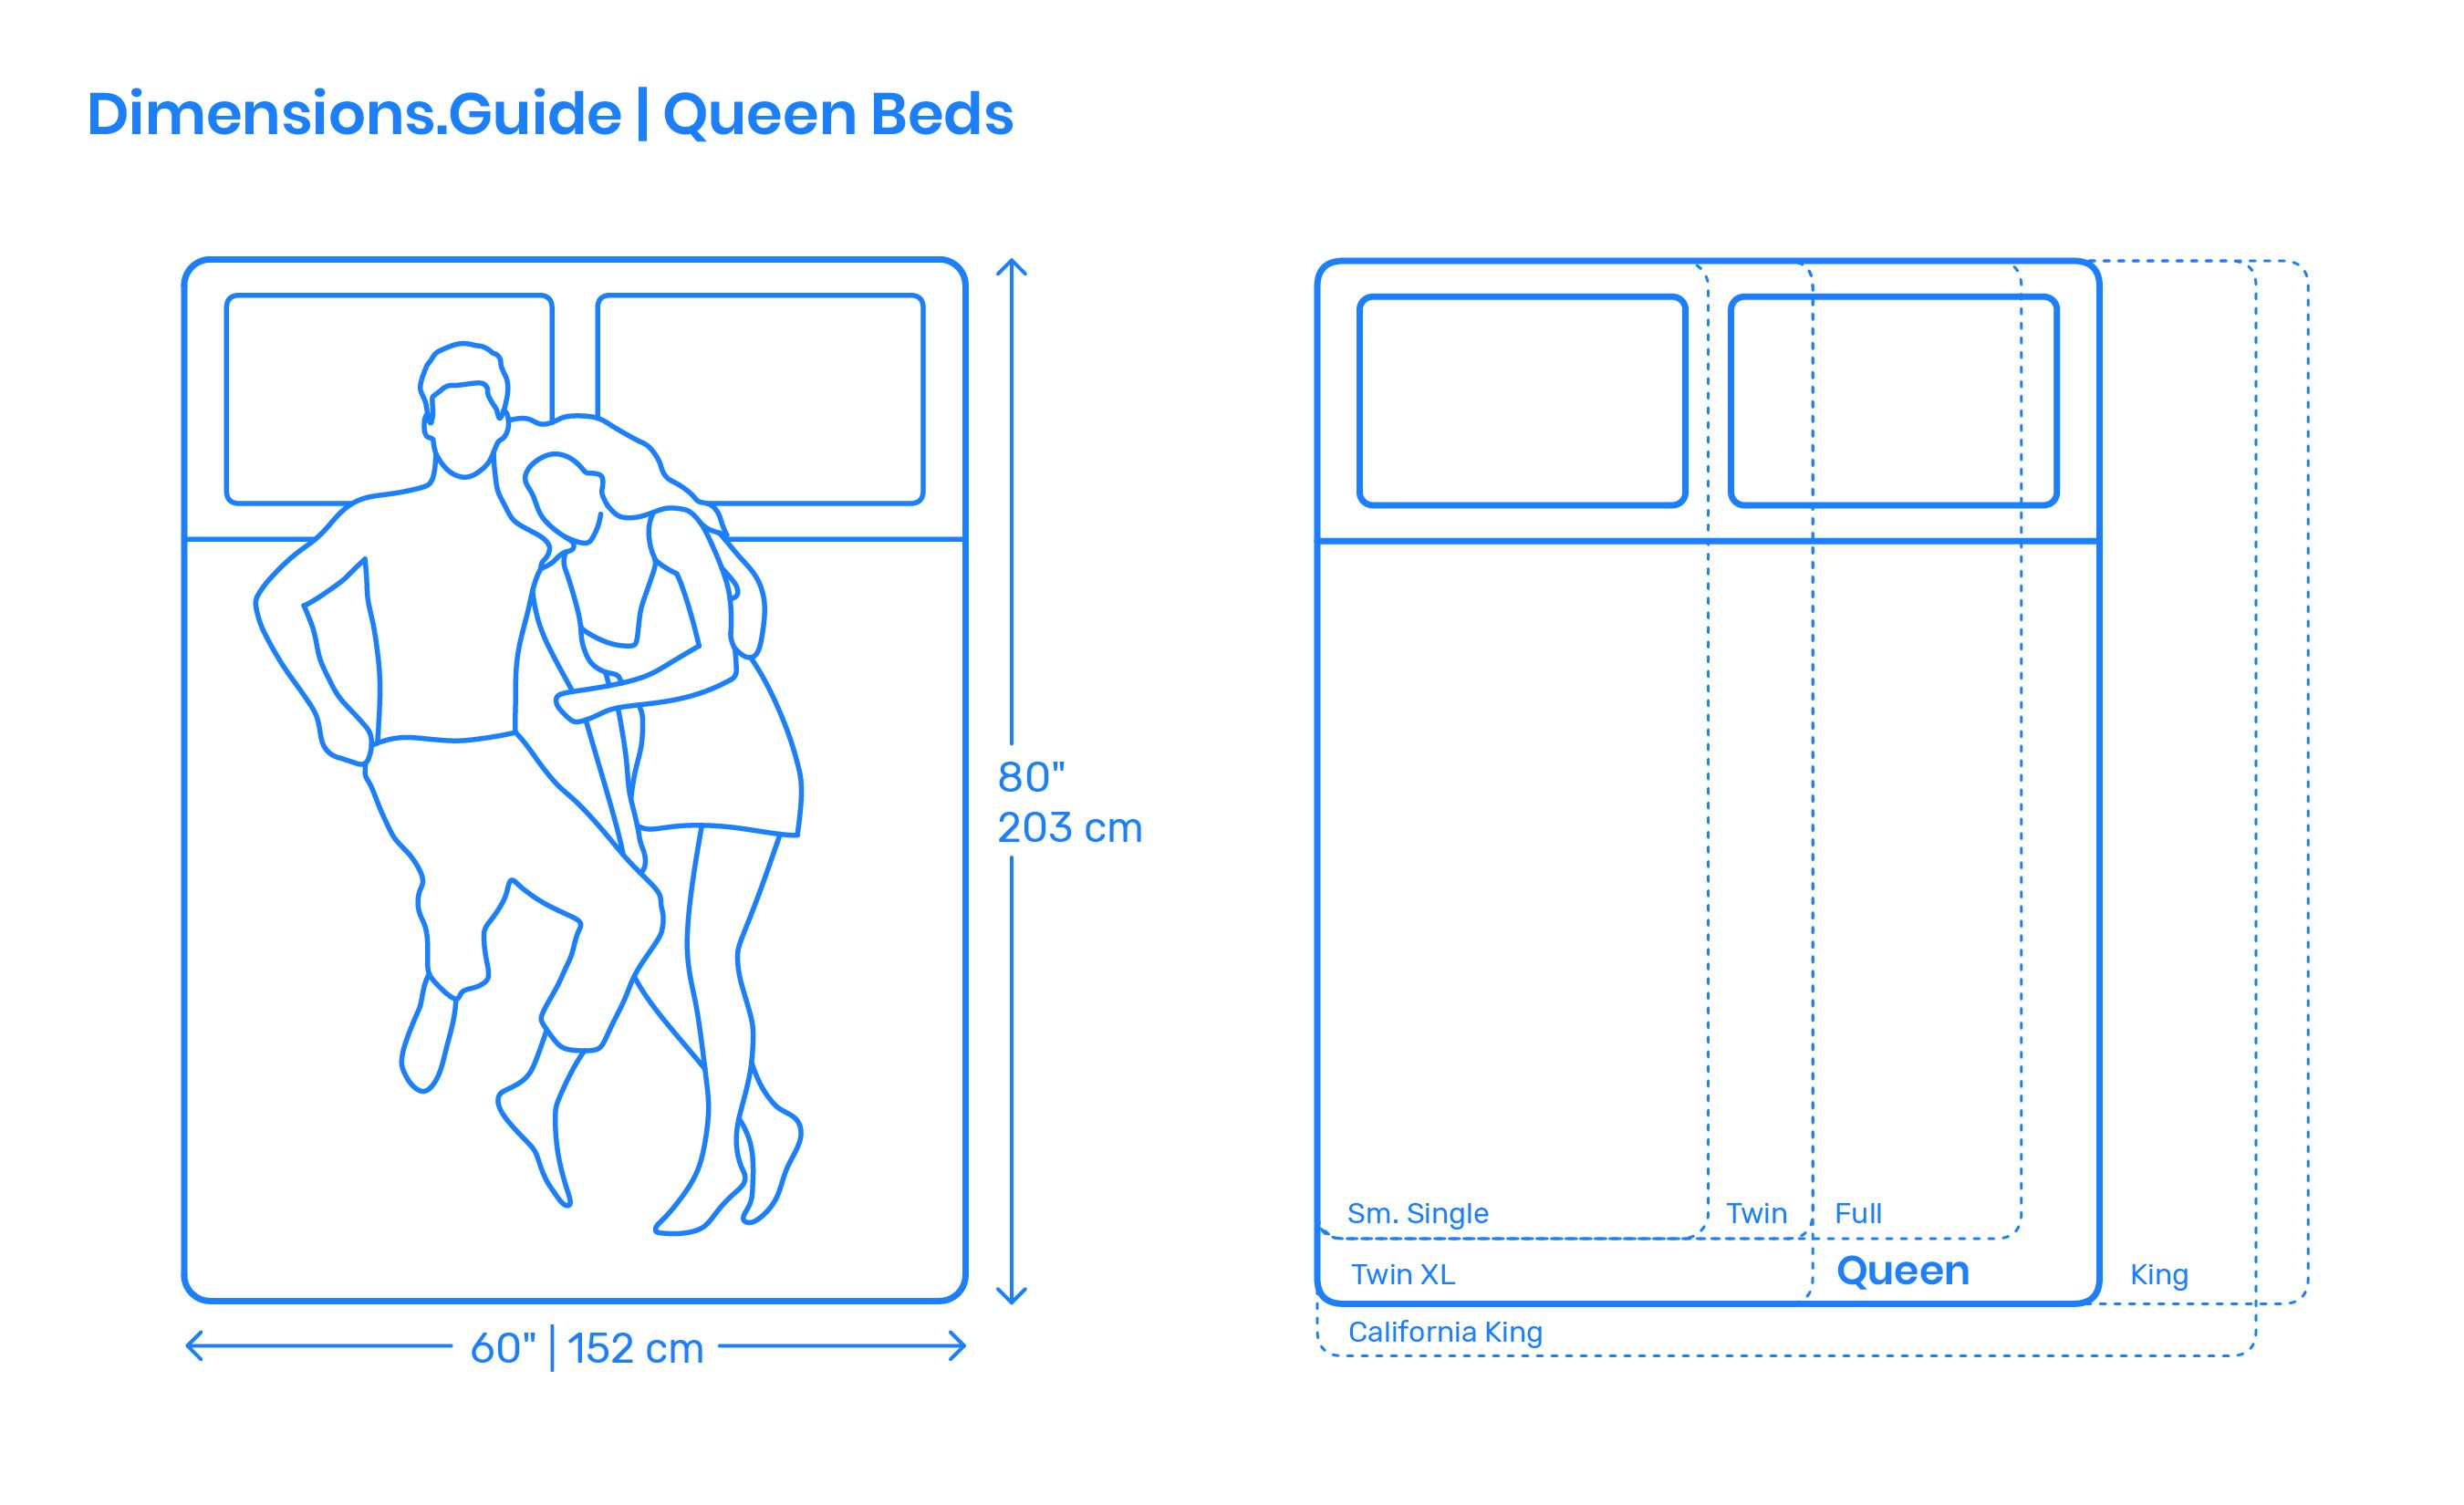 What Are The Dimensions Of A Queen Bed